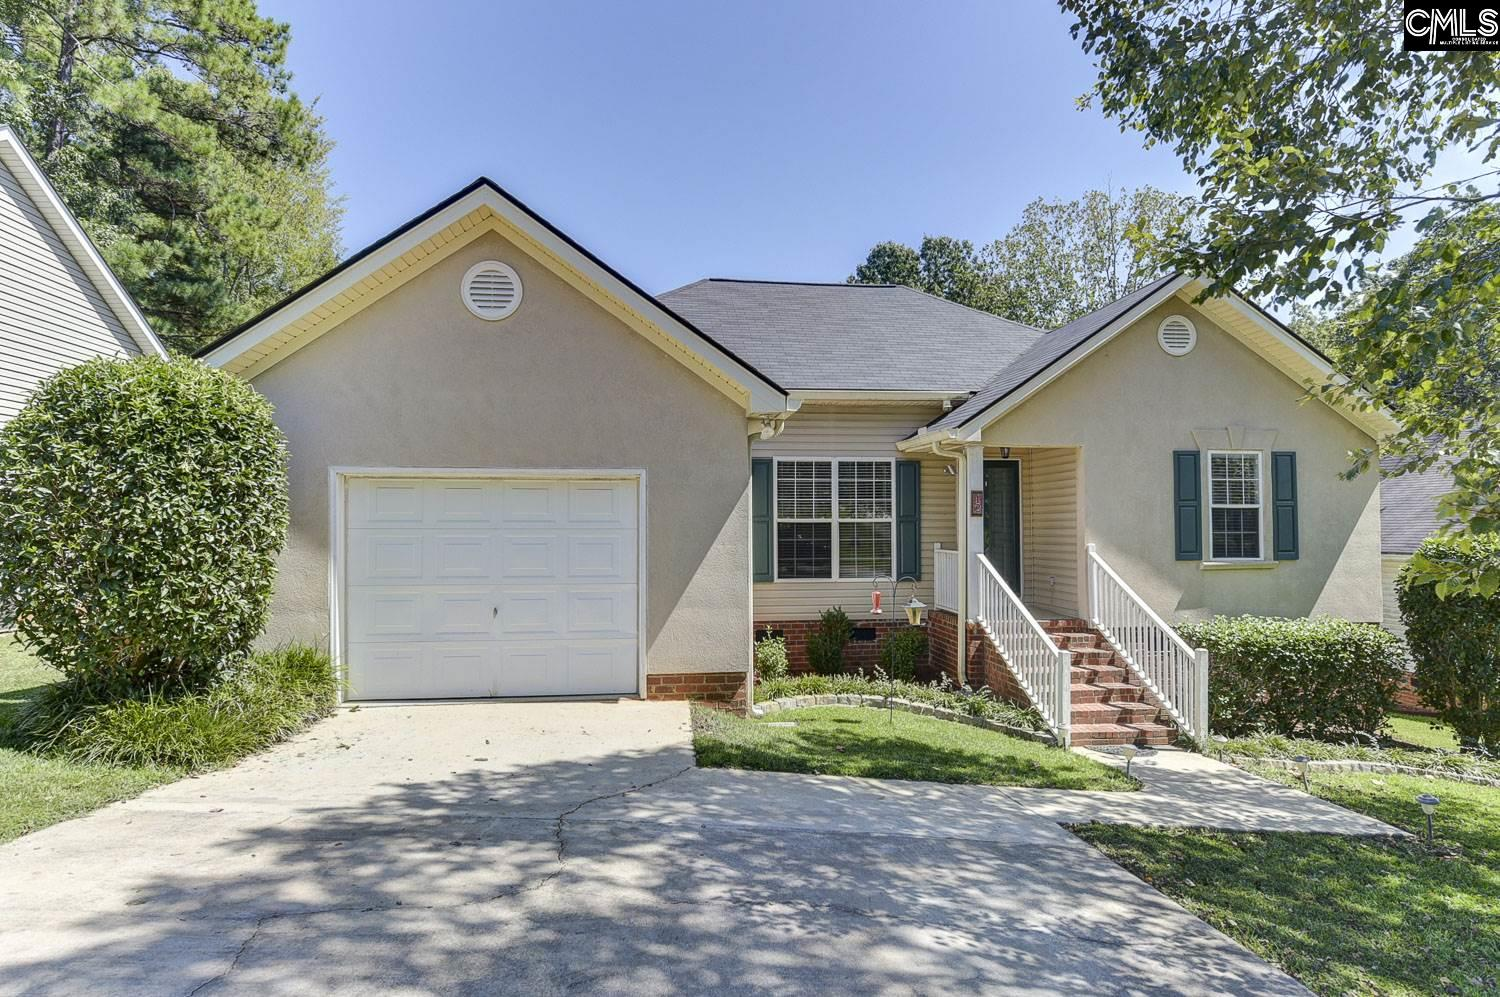 12 Caddis Creek Irmo, SC 29063